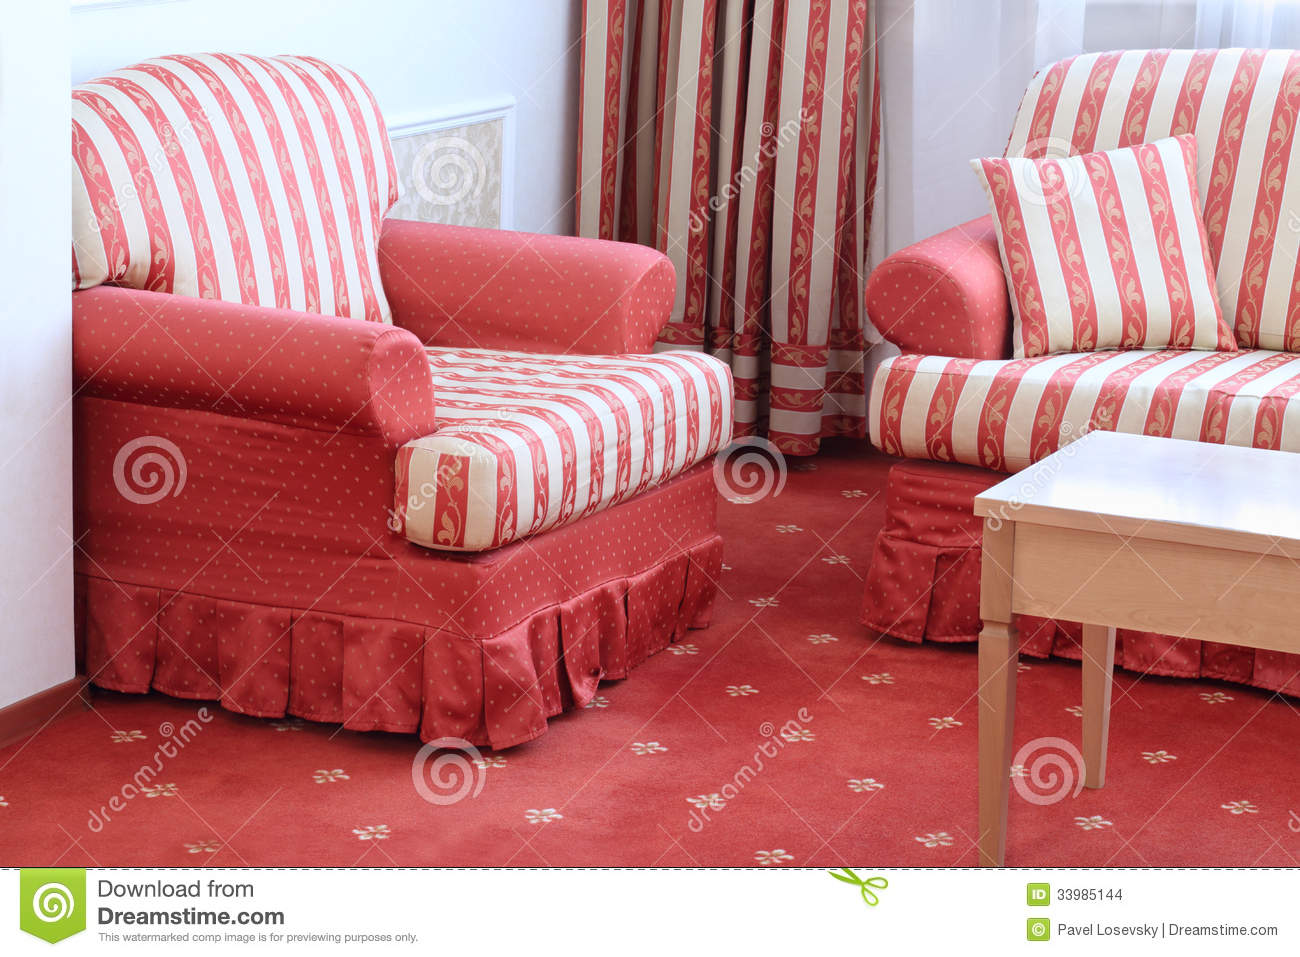 Red Striped Sofa With Pillow And Armchair Stock Photo - Image of ...